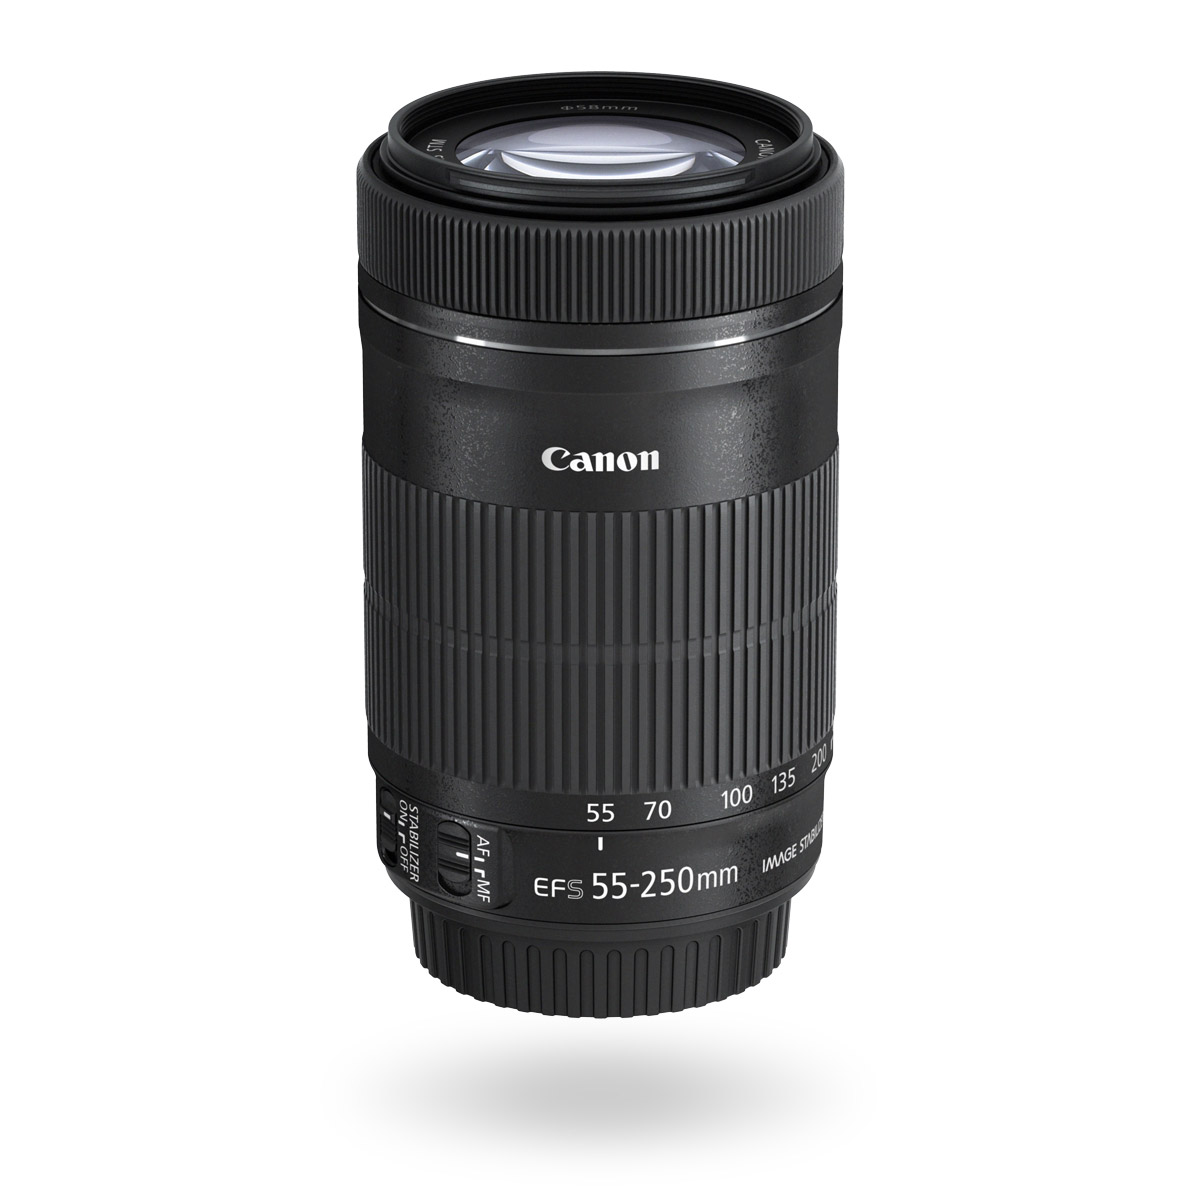 EF-S 55-250mm f/4-5.6 IS STM lens